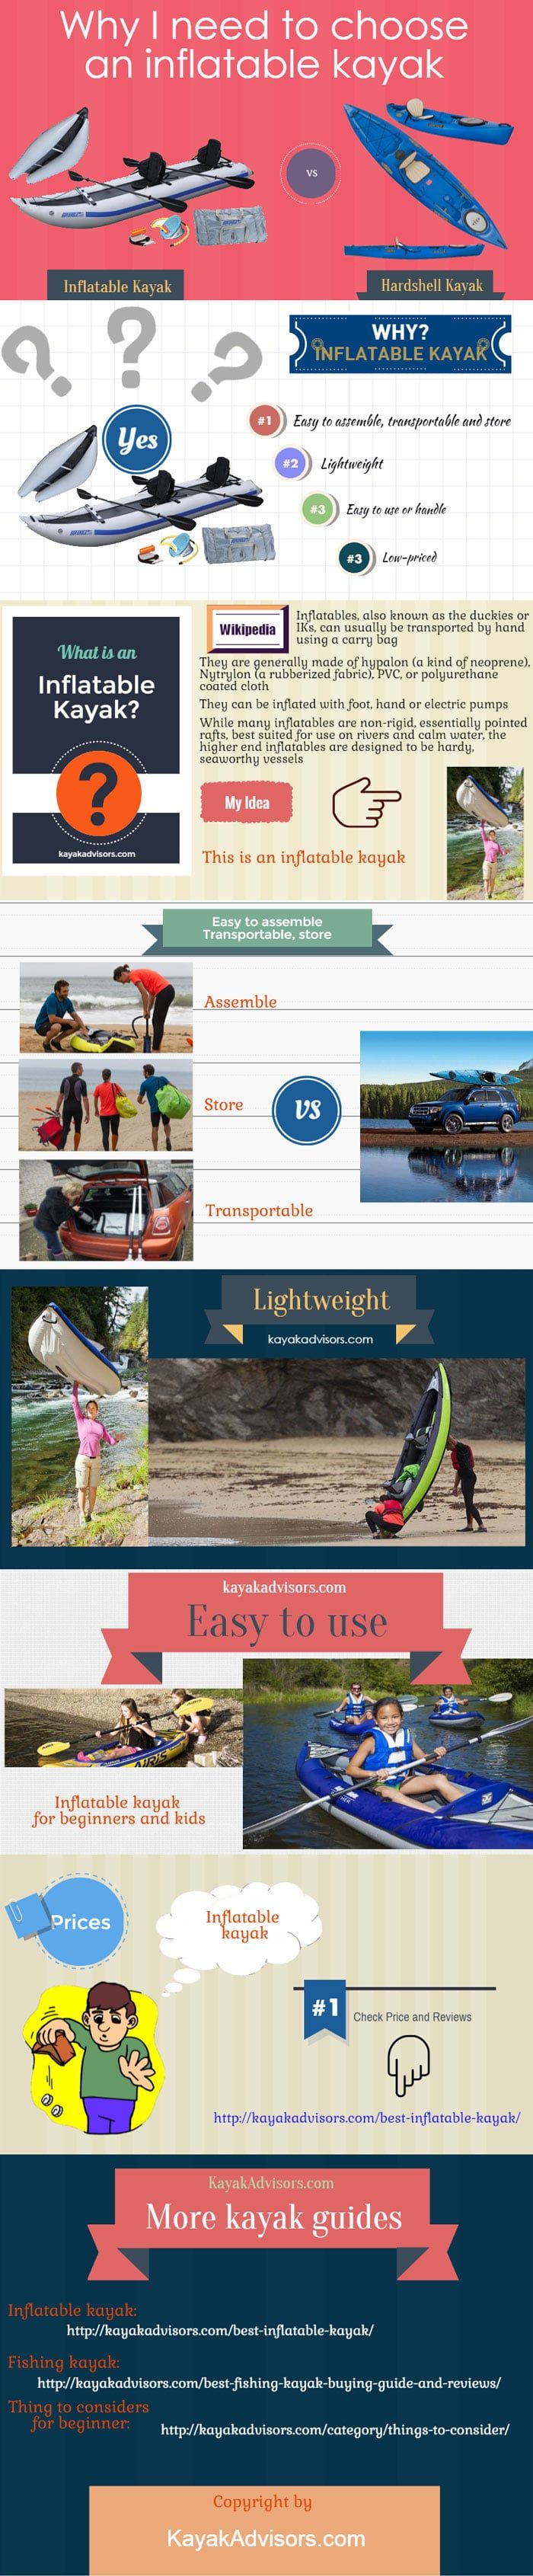 Which is better, an inflatable kayak or a hardshell kayak